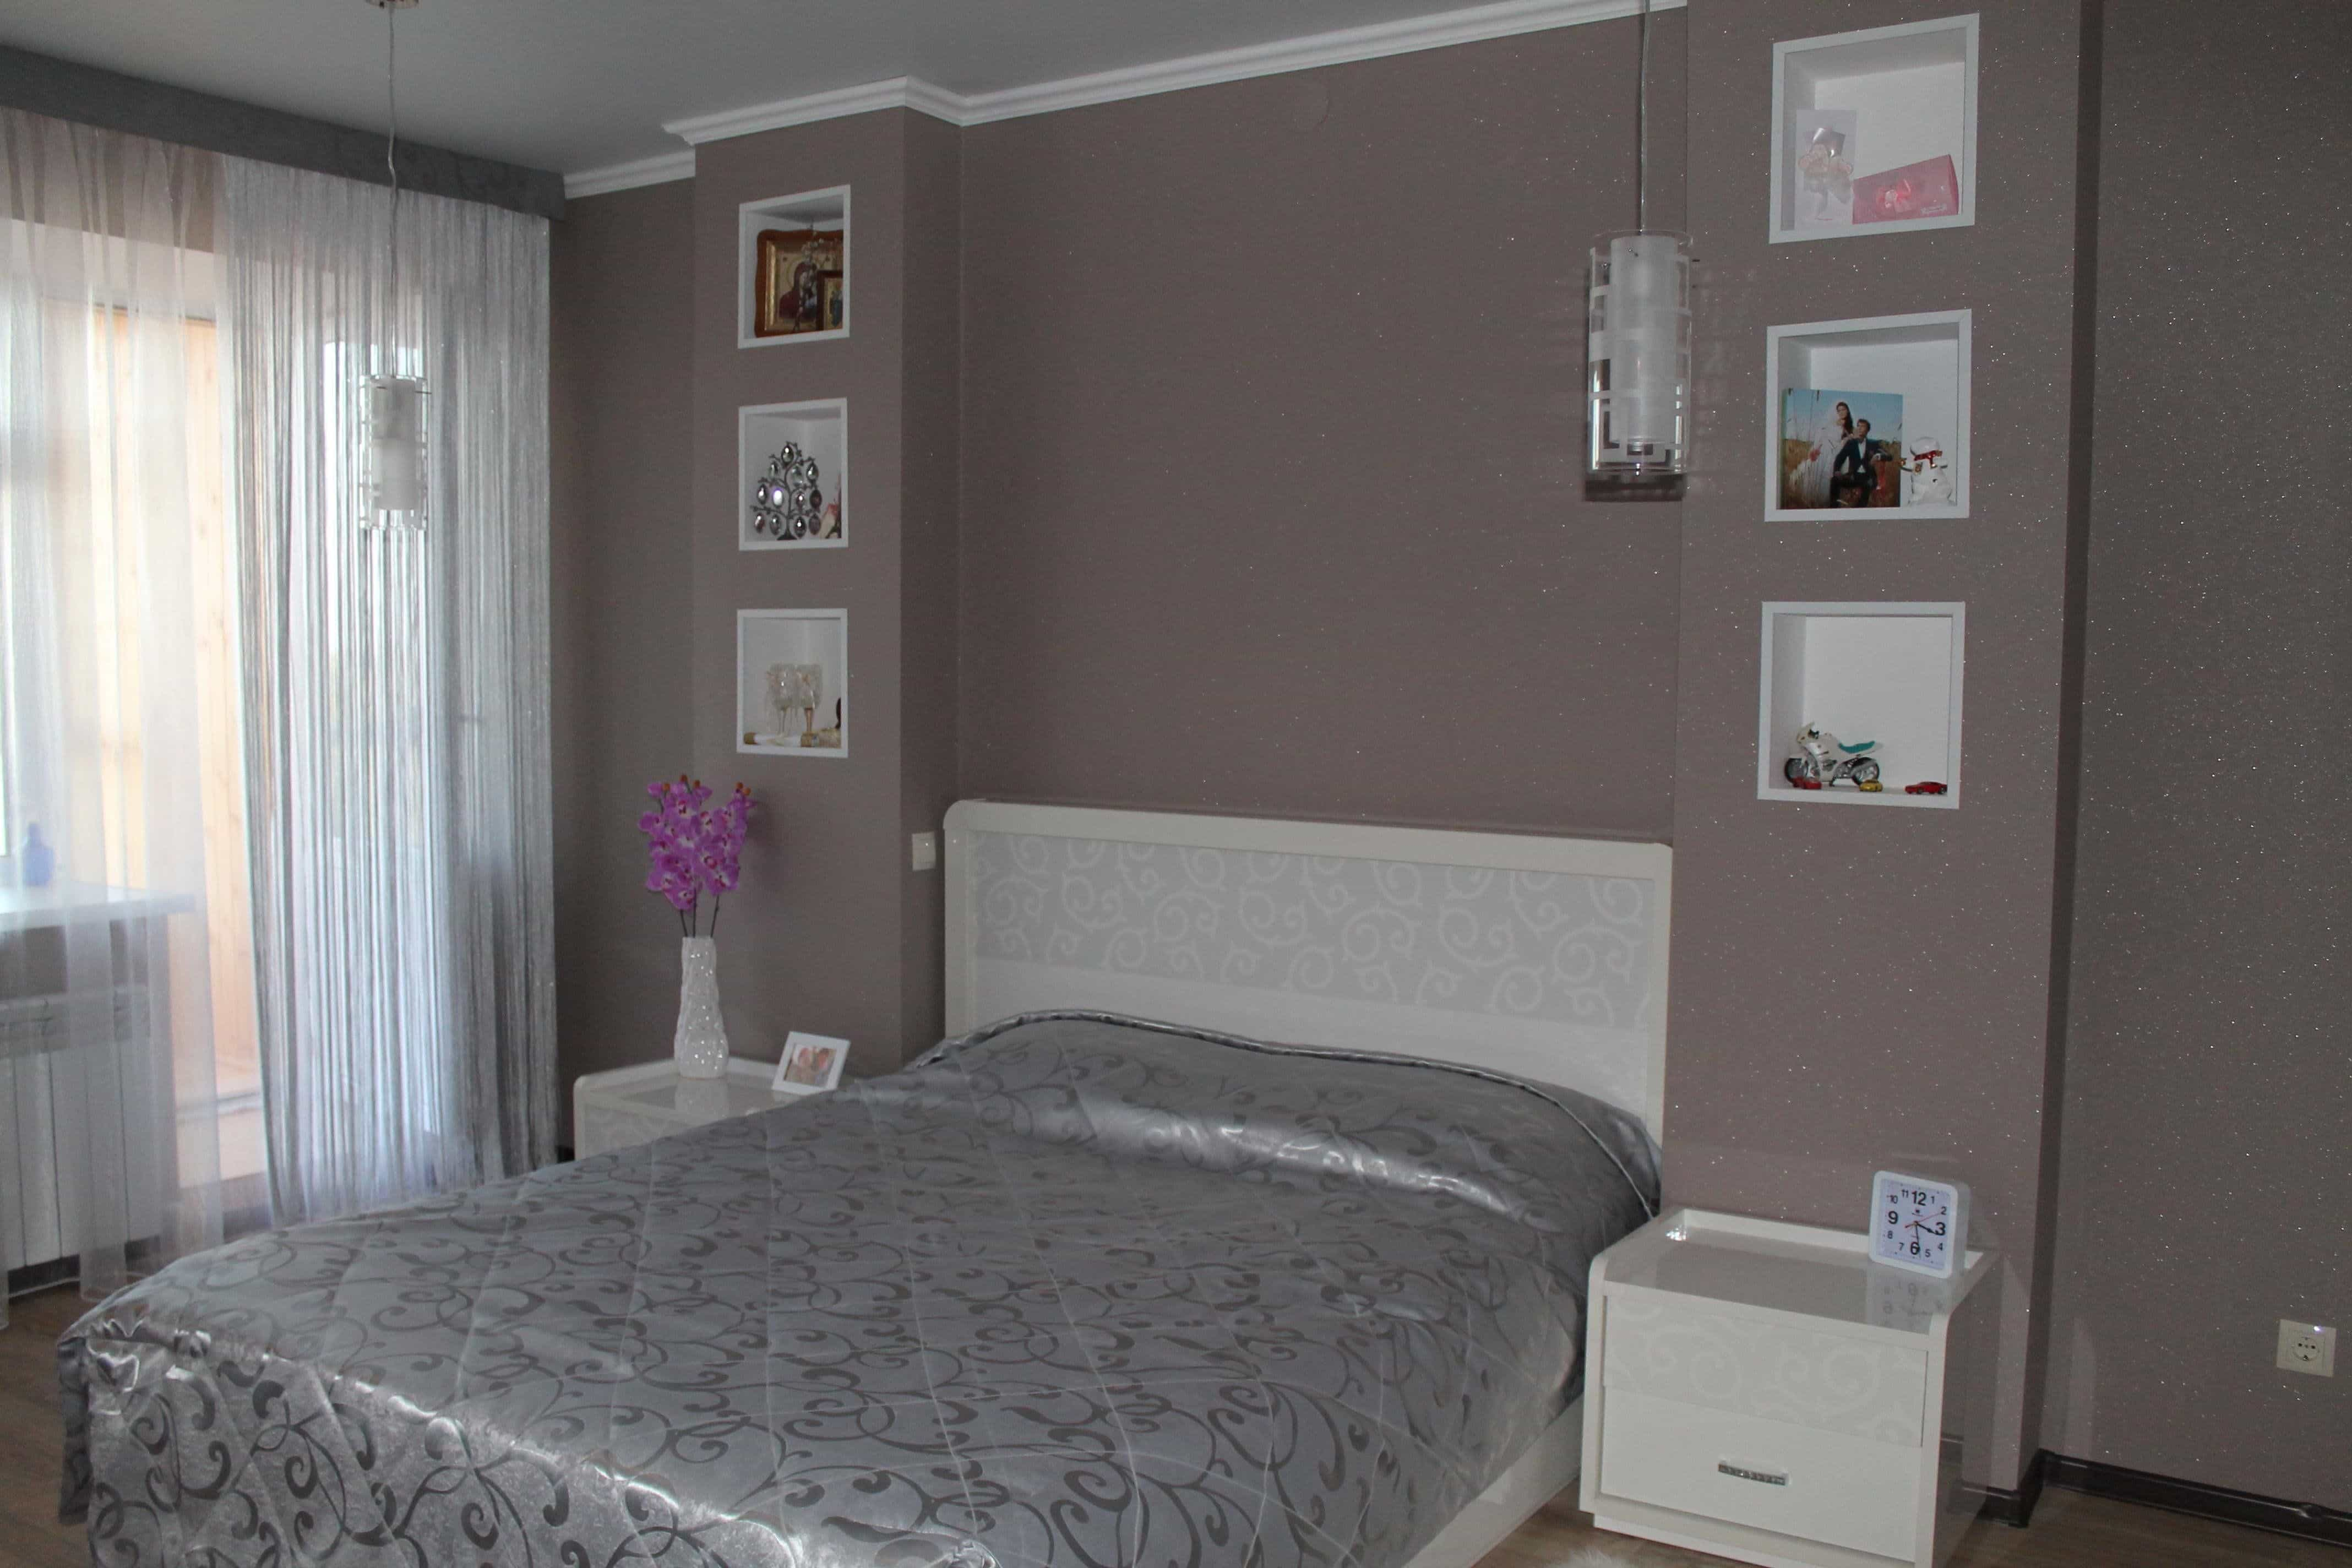 Bedroom 4 by 4 meters with a headboard in a niche